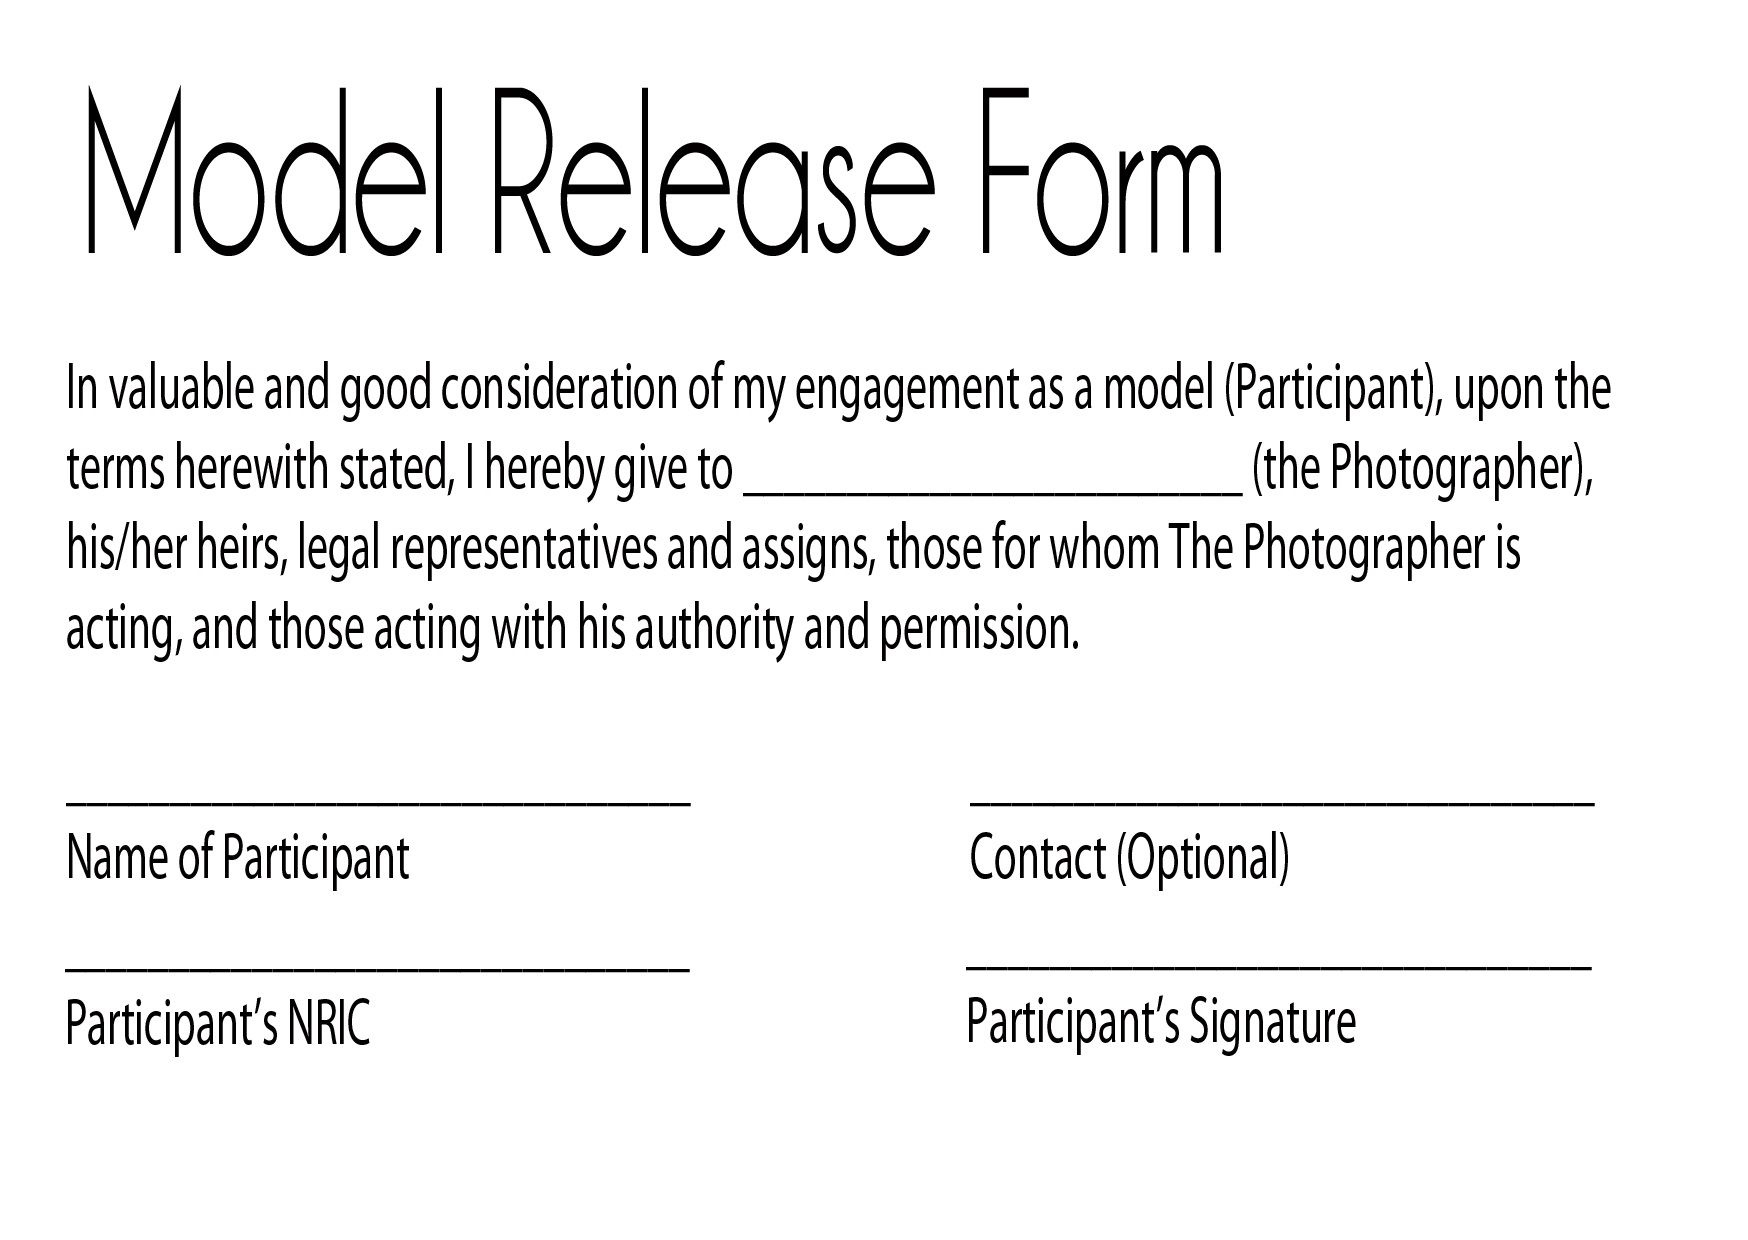 002 Surprising Model Release Form Template Picture  Photography Uk Gdpr AustraliaFull